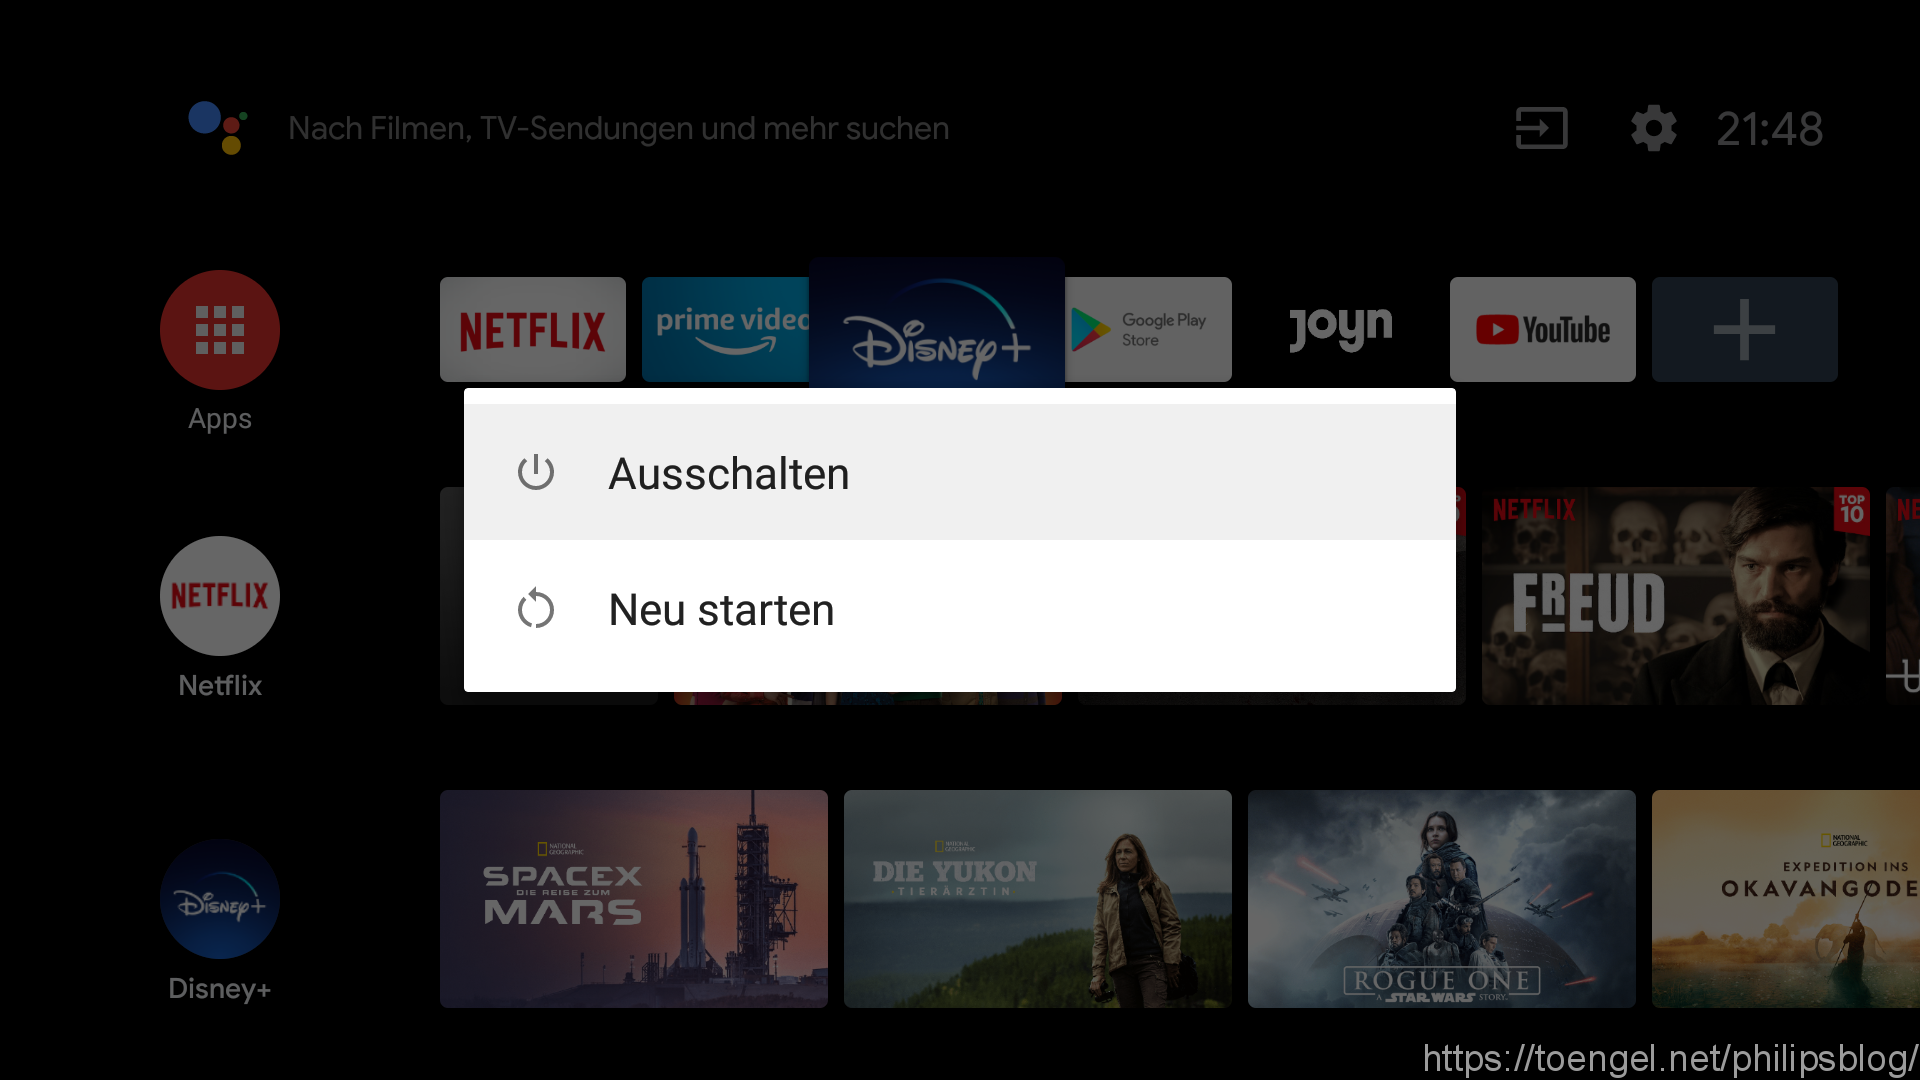 Philips: Android TV Fernbedienung neu belegen (Restart Dialog)